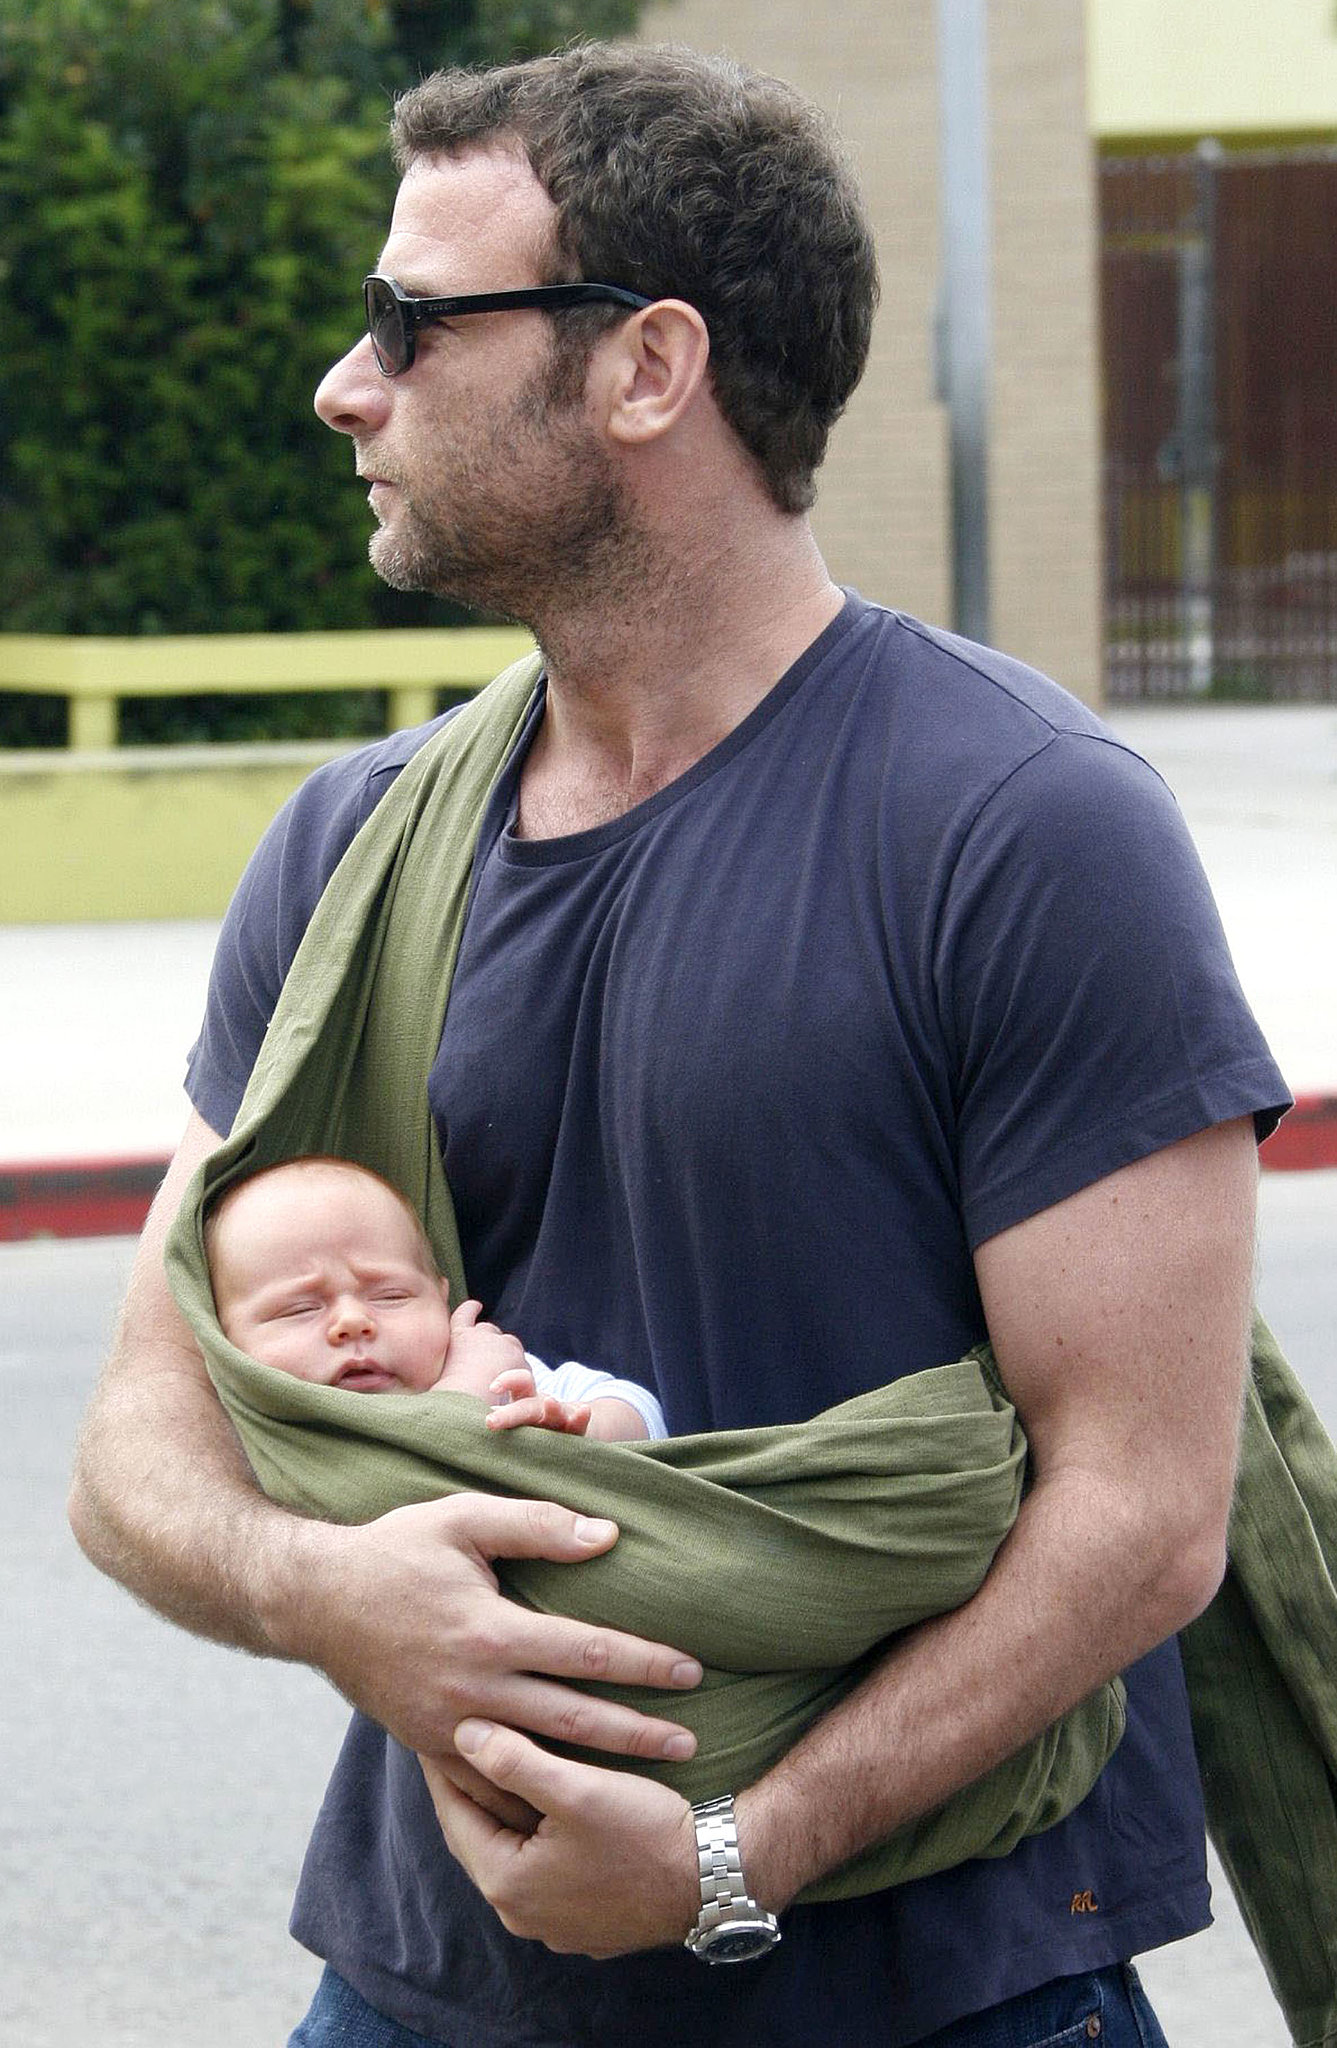 Liev Schreiber carried his newborn baby Alexander in a Mamma's Milk ...: www.popsugar.com/moms/photo-gallery/30950178/image/30950185/Liev...